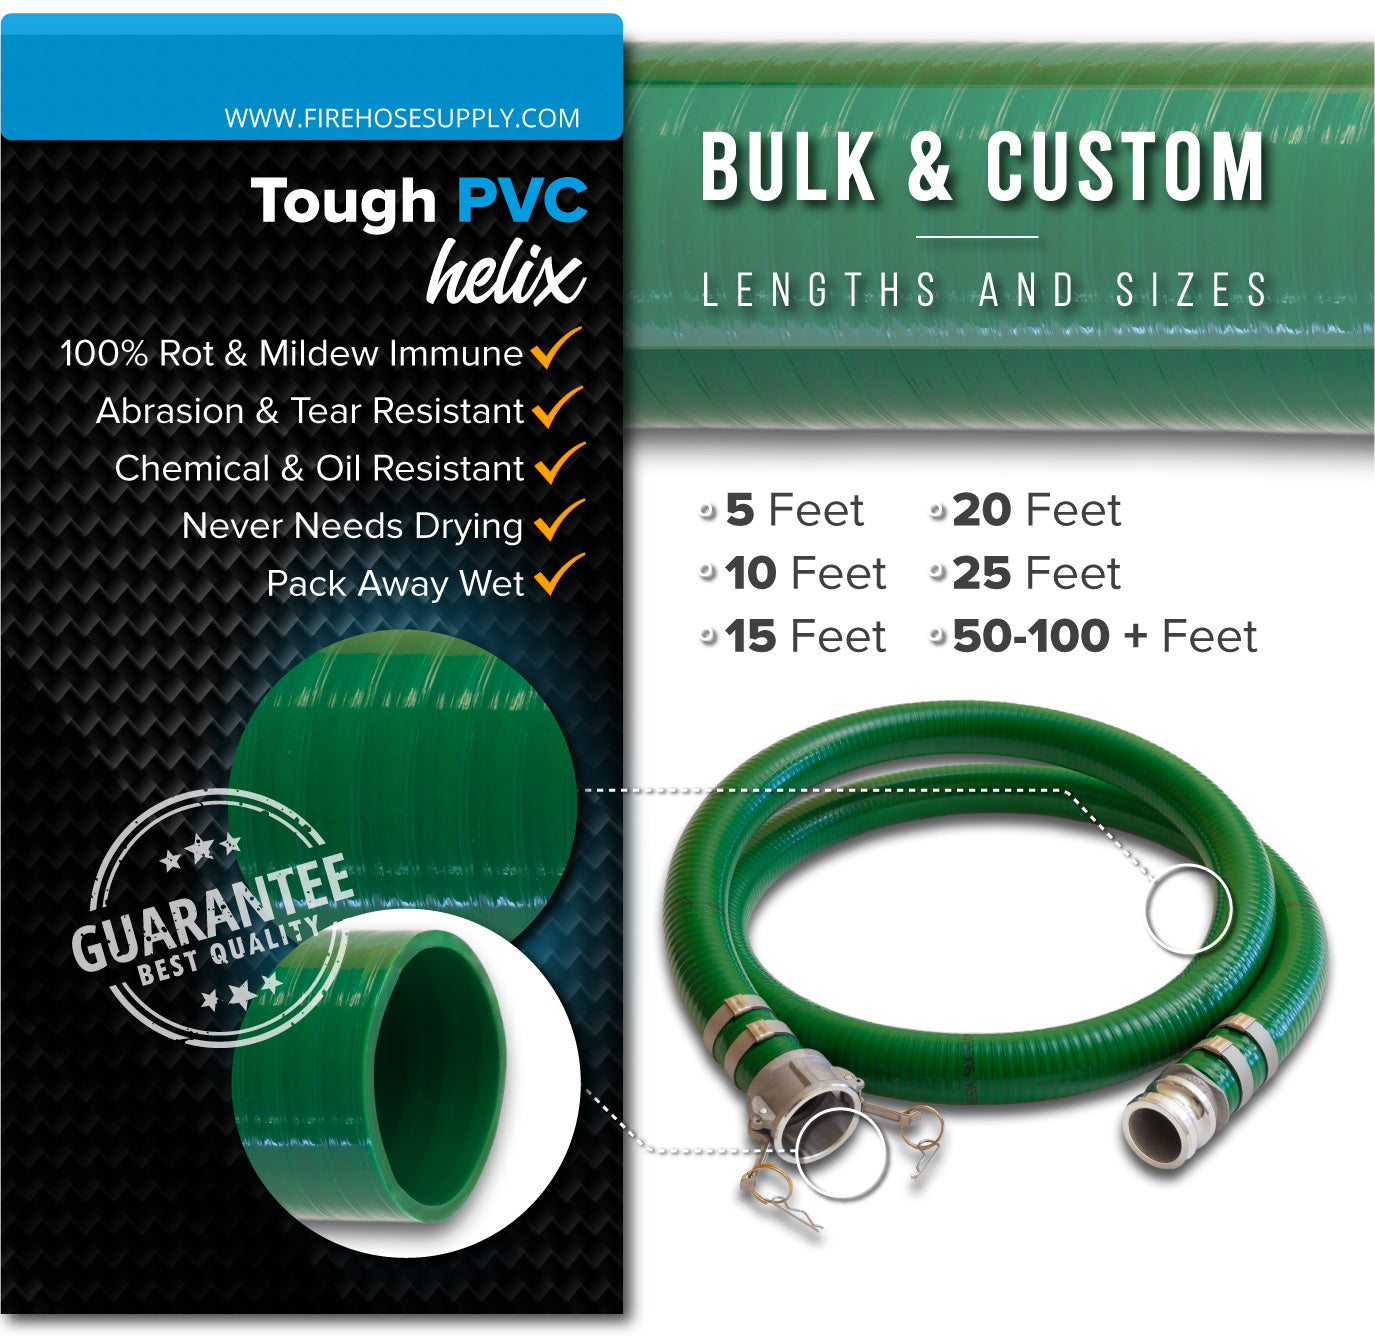 1 Inch Camlock Green Suction Hose PVC Materials